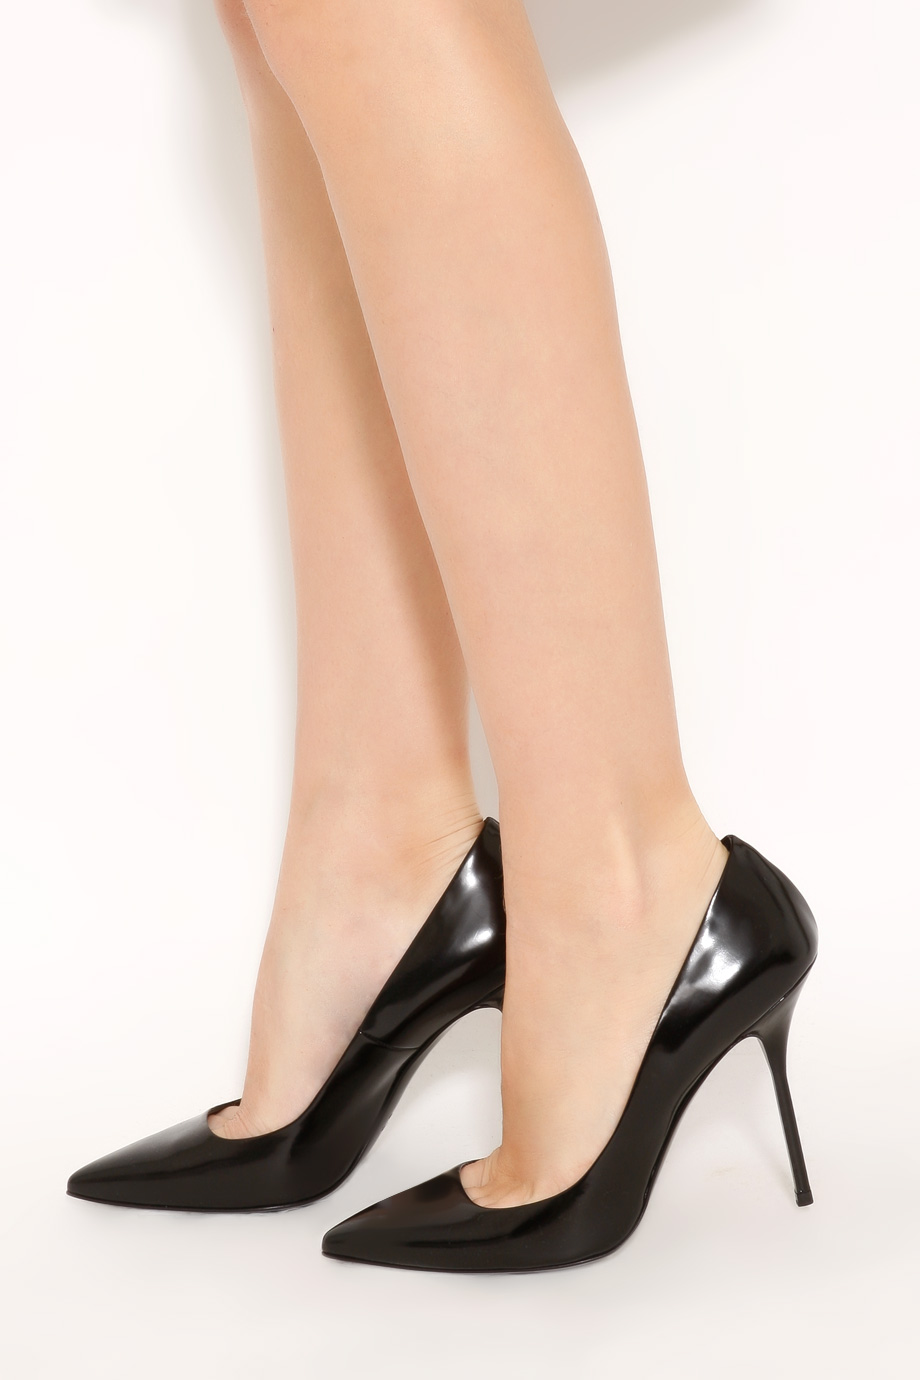 6866316102f Lyst - Pierre Hardy Shiny Calf Pointed High Heels in Black